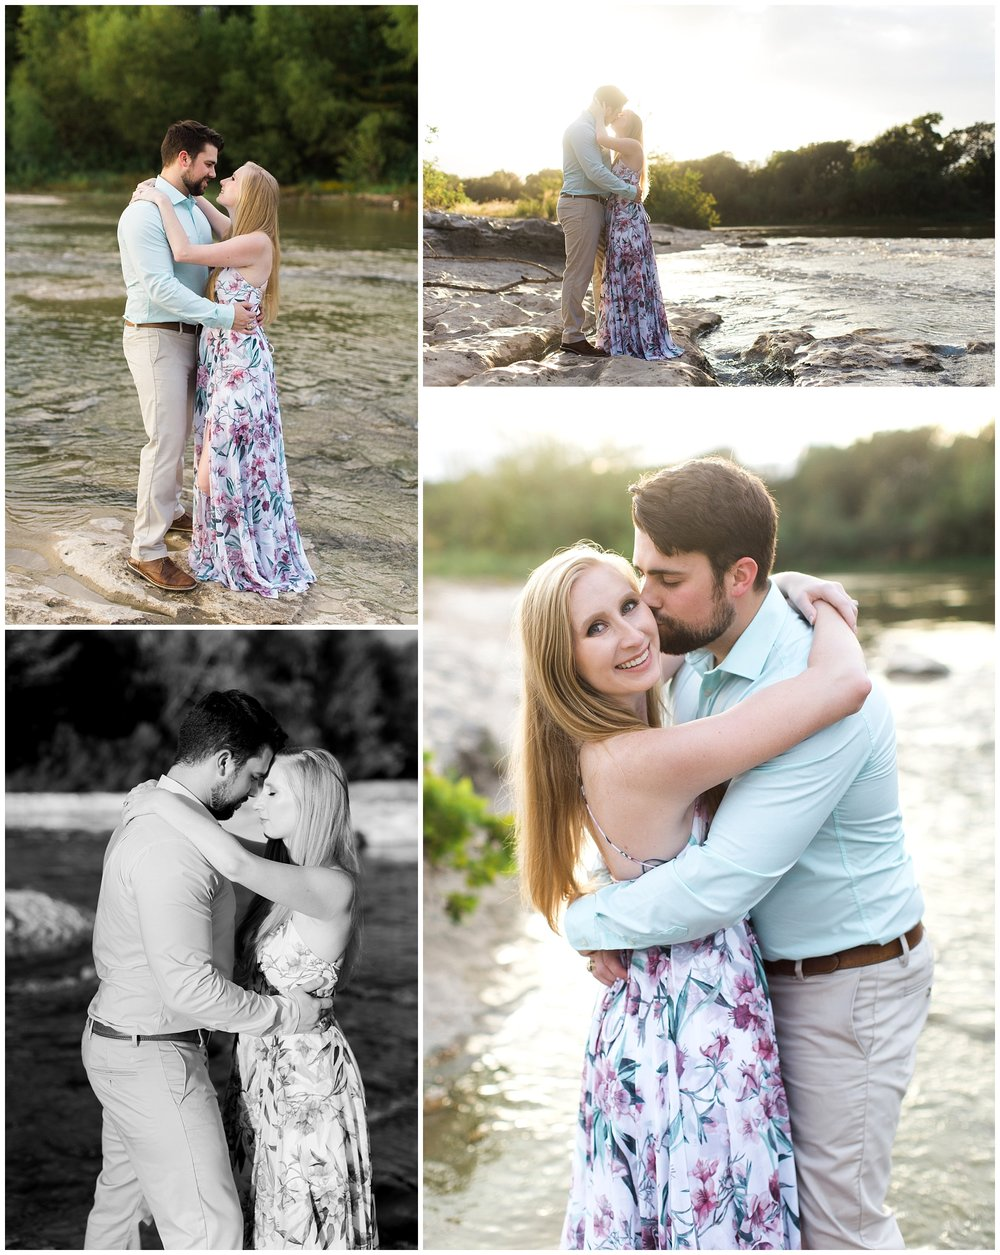 McKinney_Falls_State_Park_Engagement_Session_0004.jpg